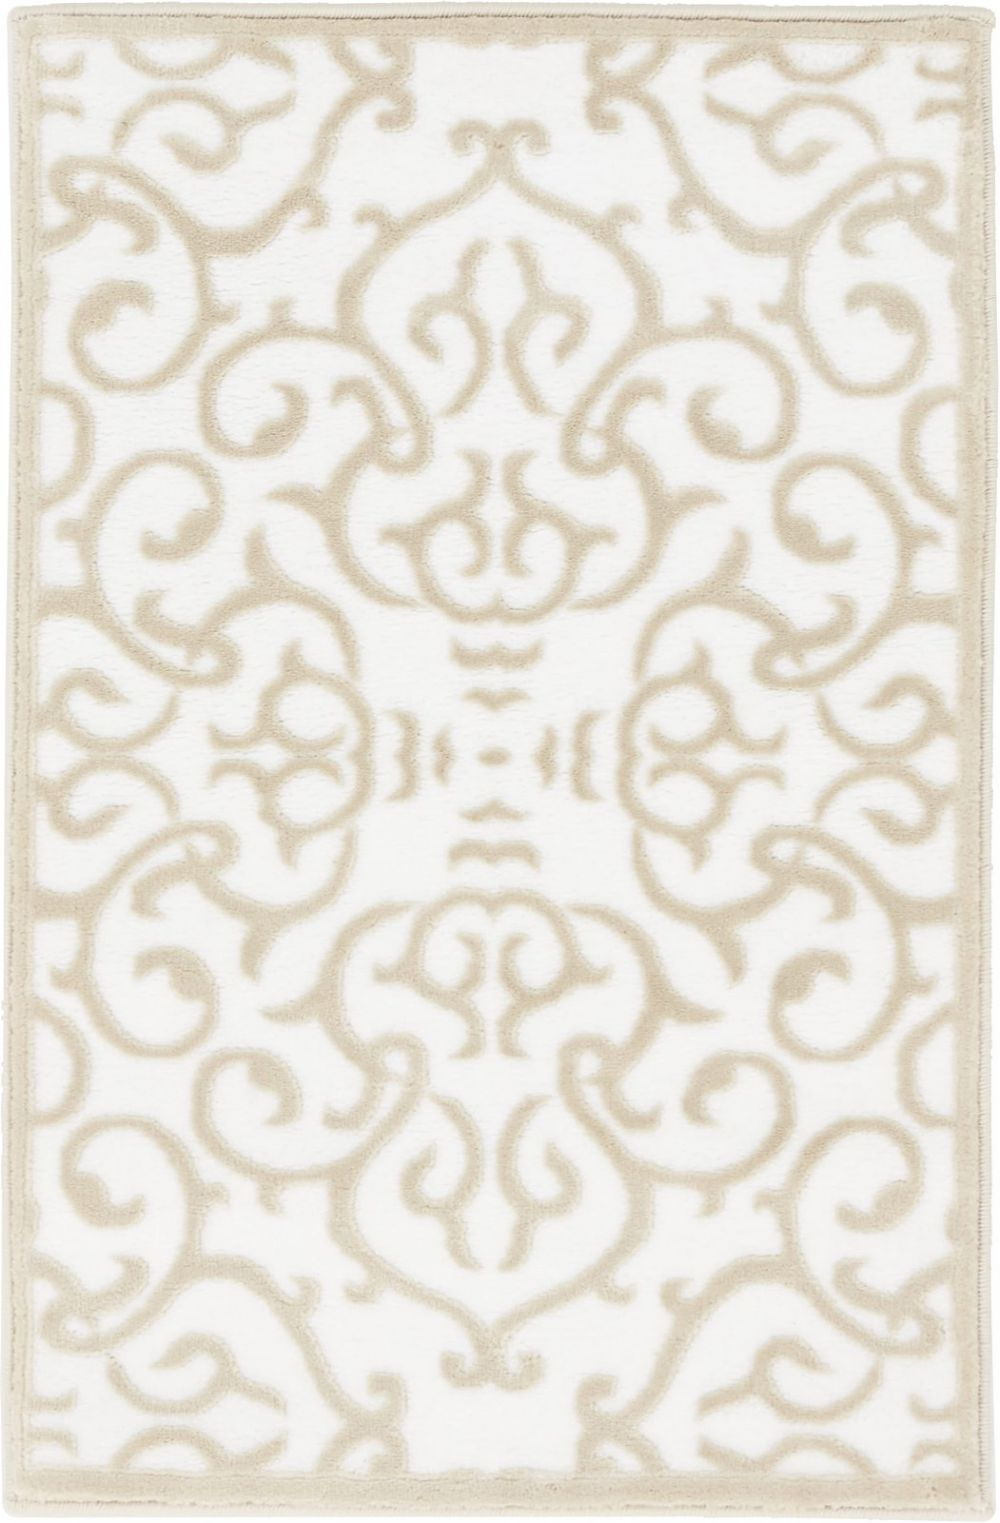 unique loom rushmore transitional area rug collection